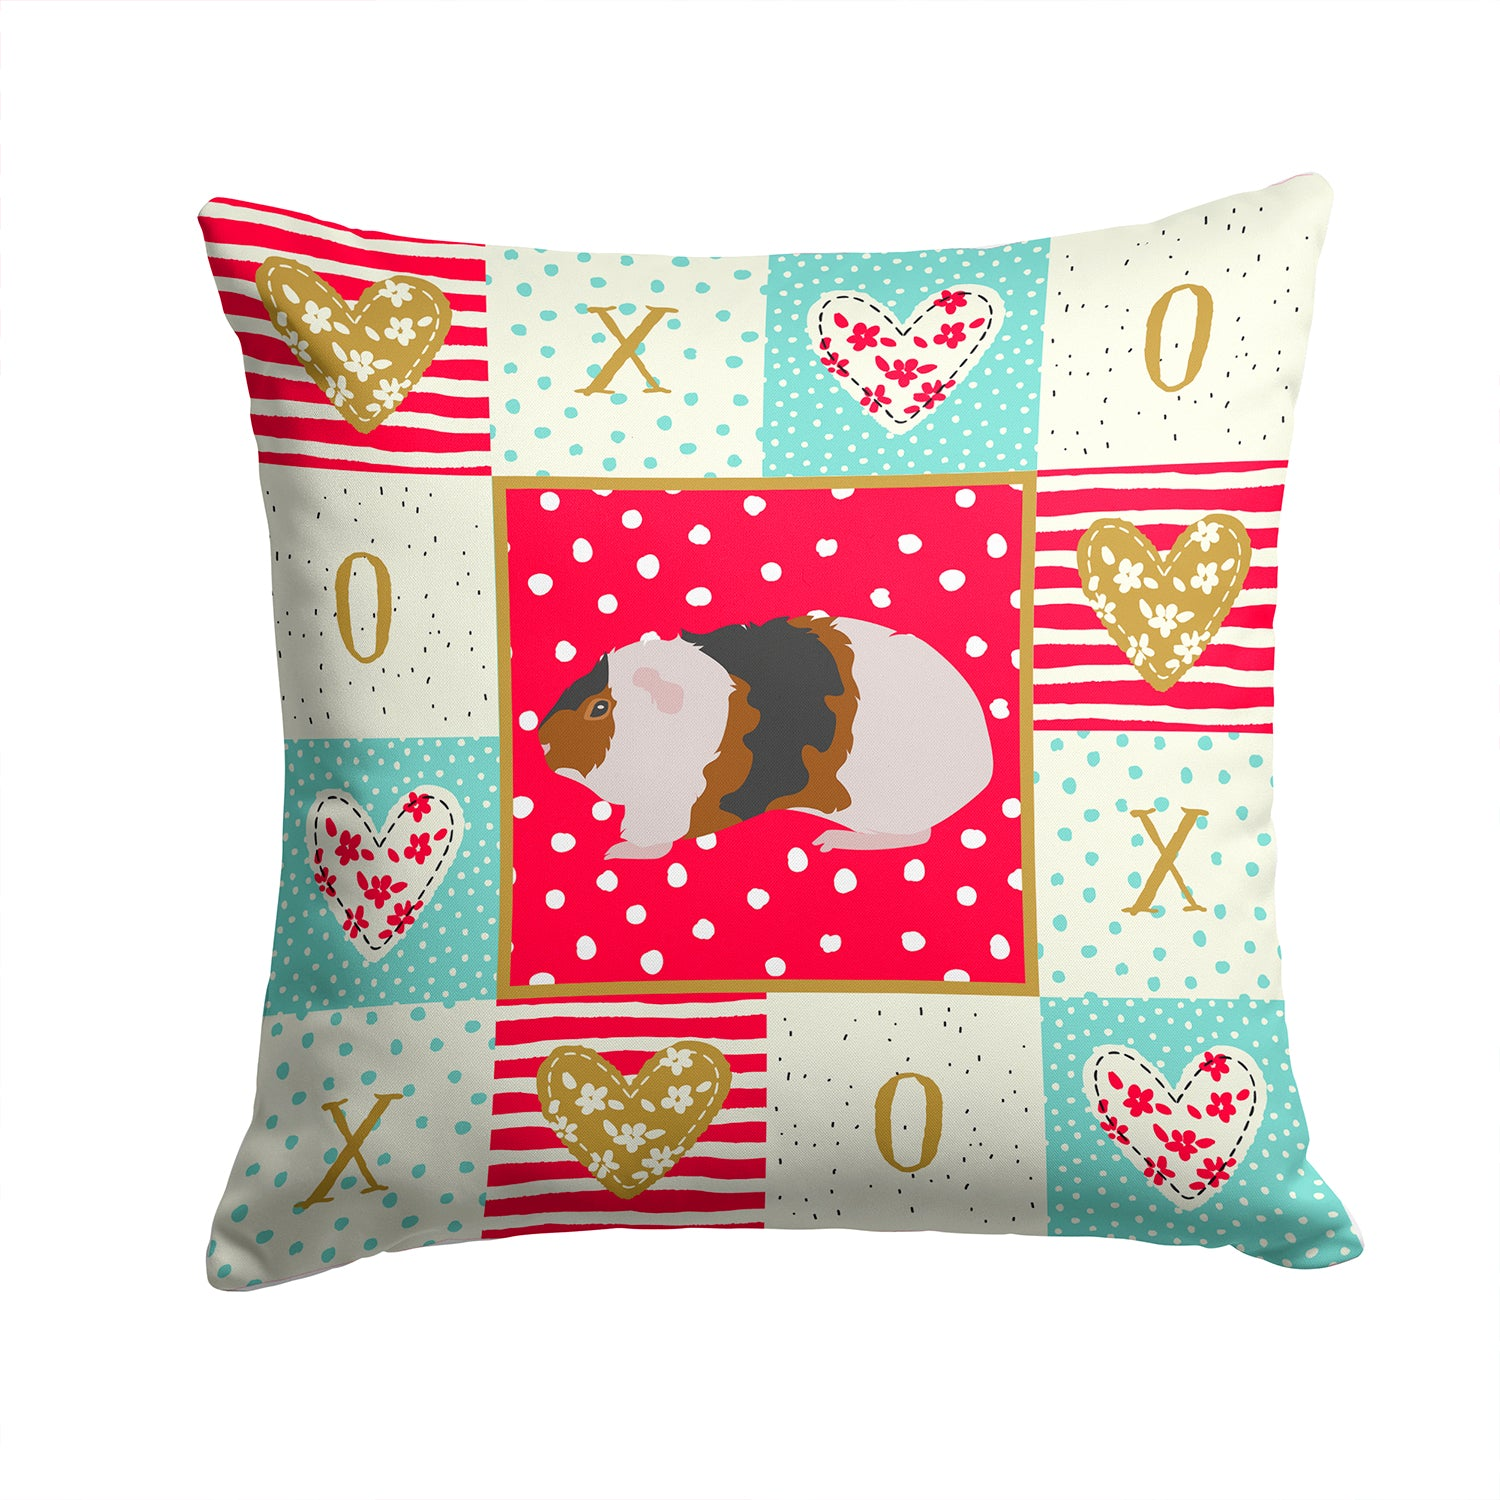 Buy this Teddy Guinea Pig Love Fabric Decorative Pillow CK5436PW1414